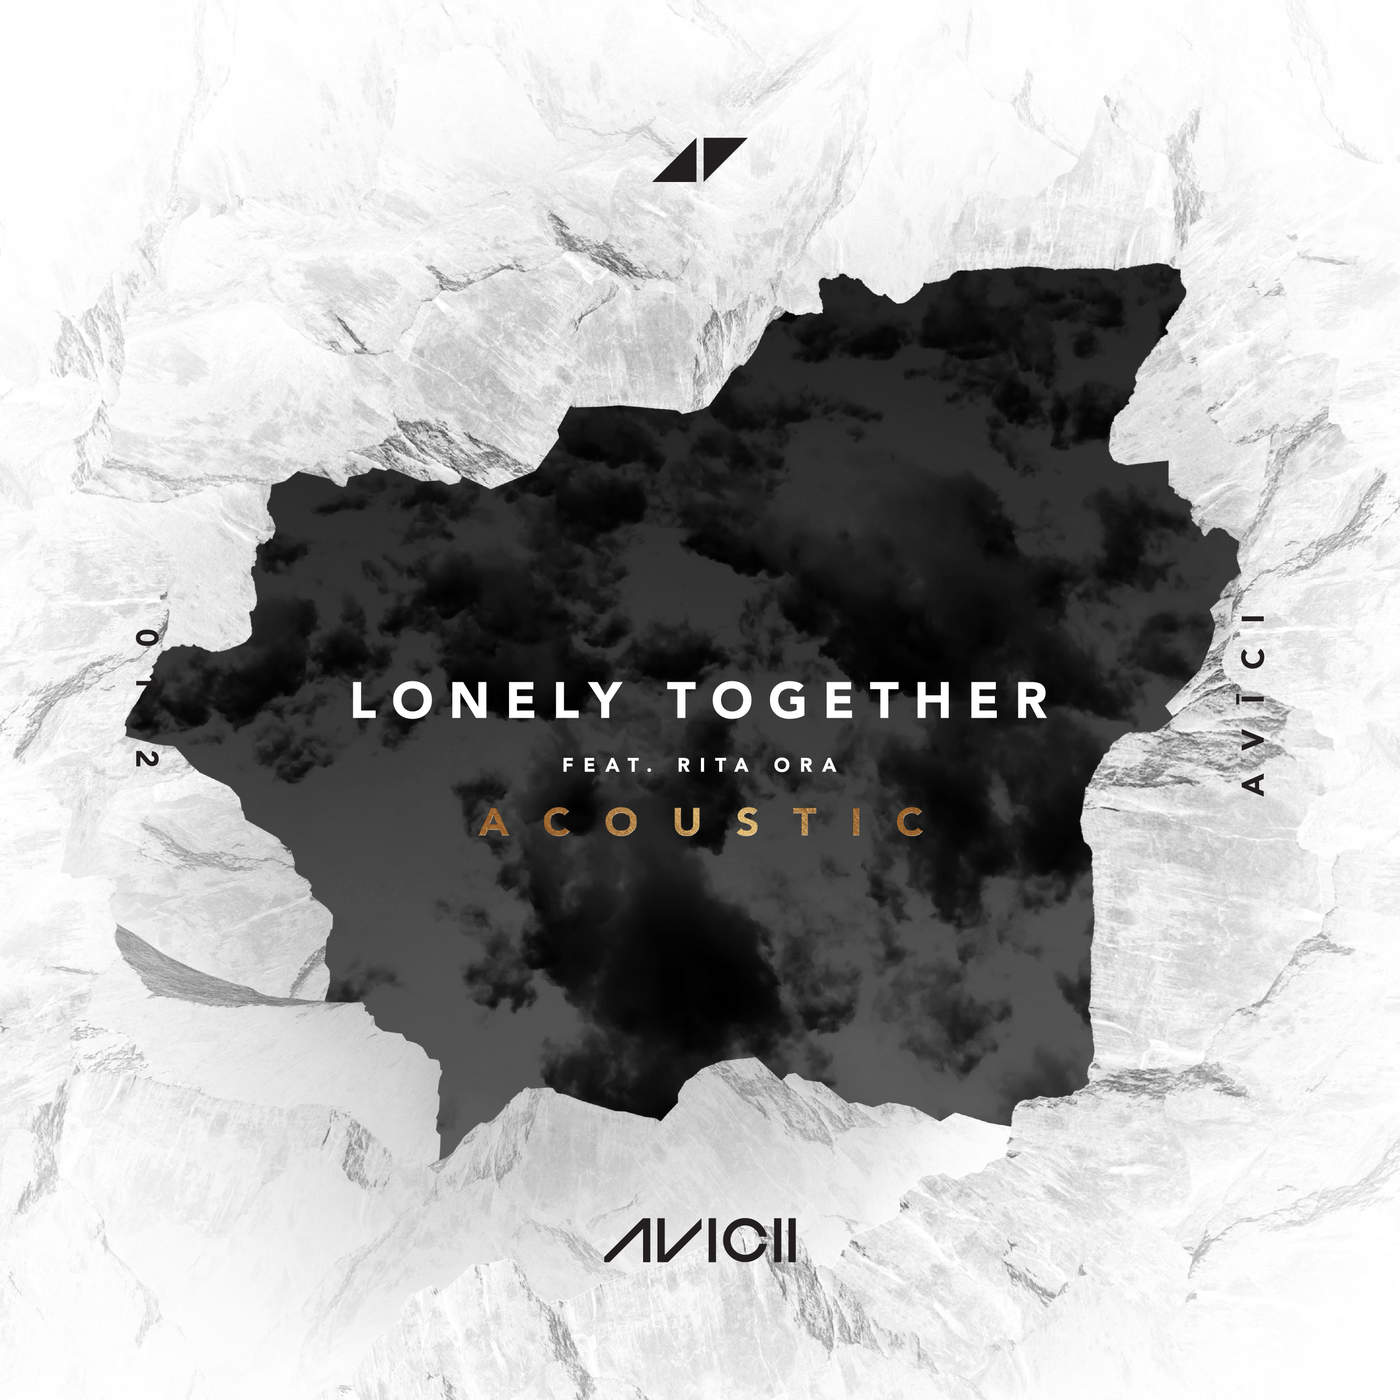 Avicii - Lonely Together (Acoustic) [feat. Rita Ora] - Single